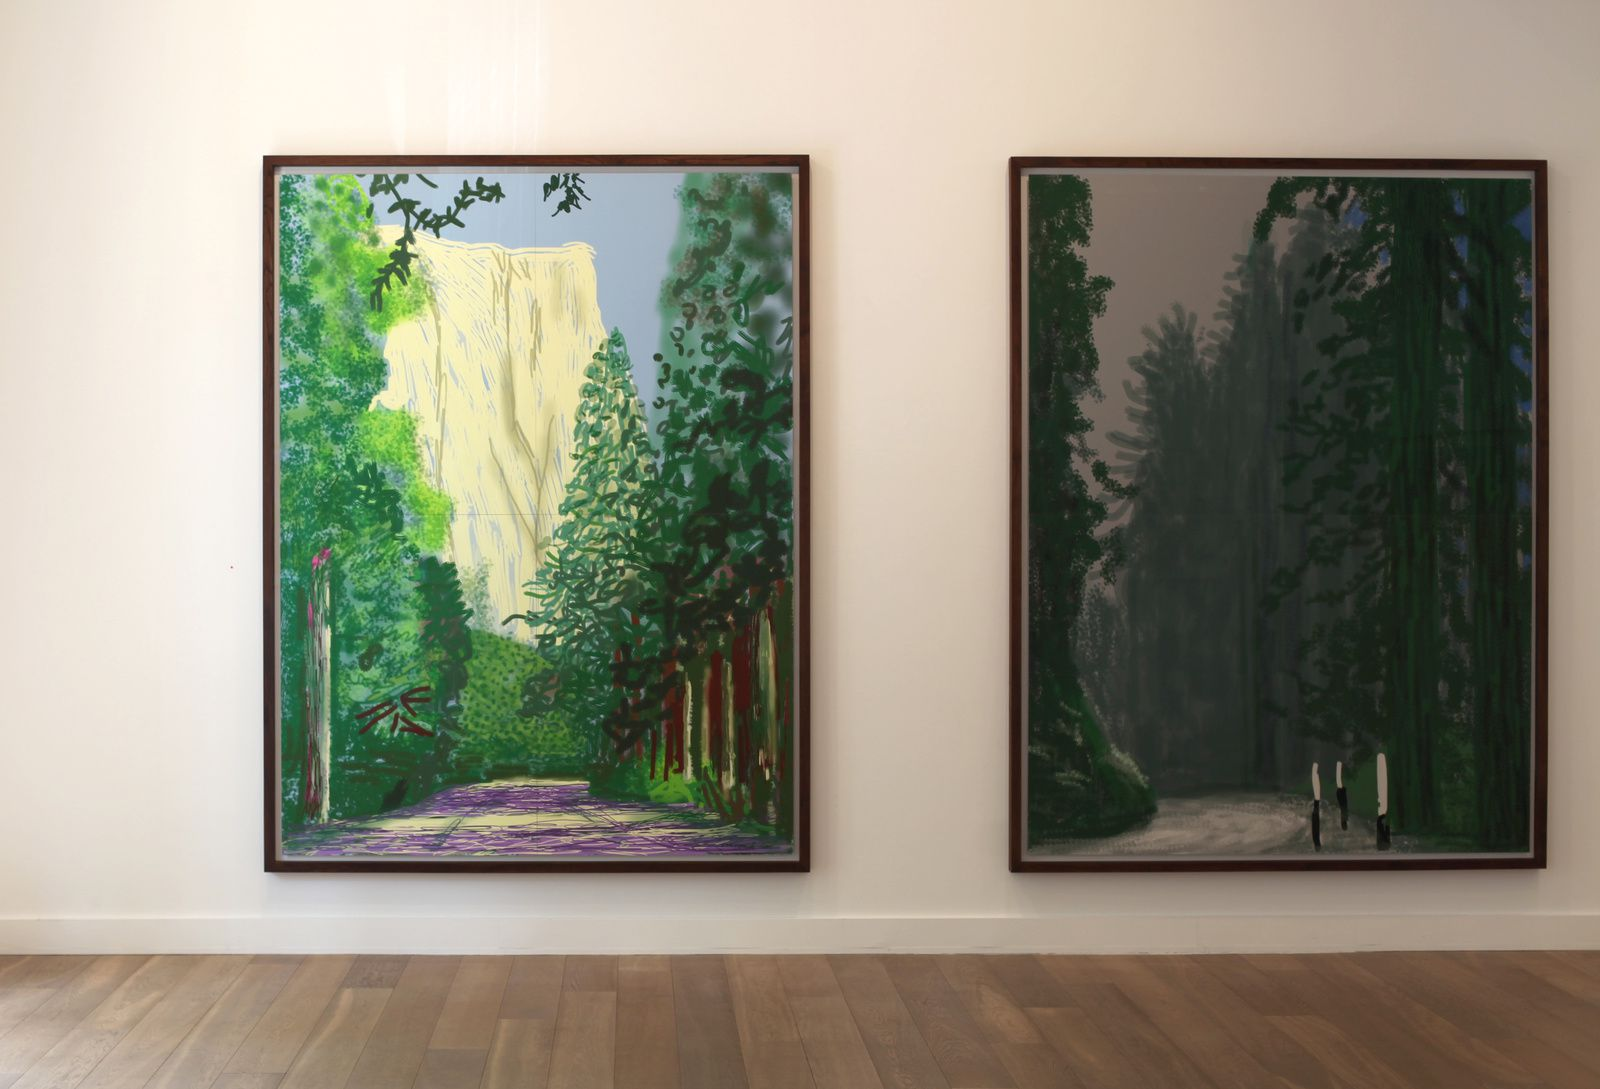 """Untitled Yosemite II"", 2011 de David HOCKNEY - Courtesy Galerie Lelong © Photo Éric Simon"